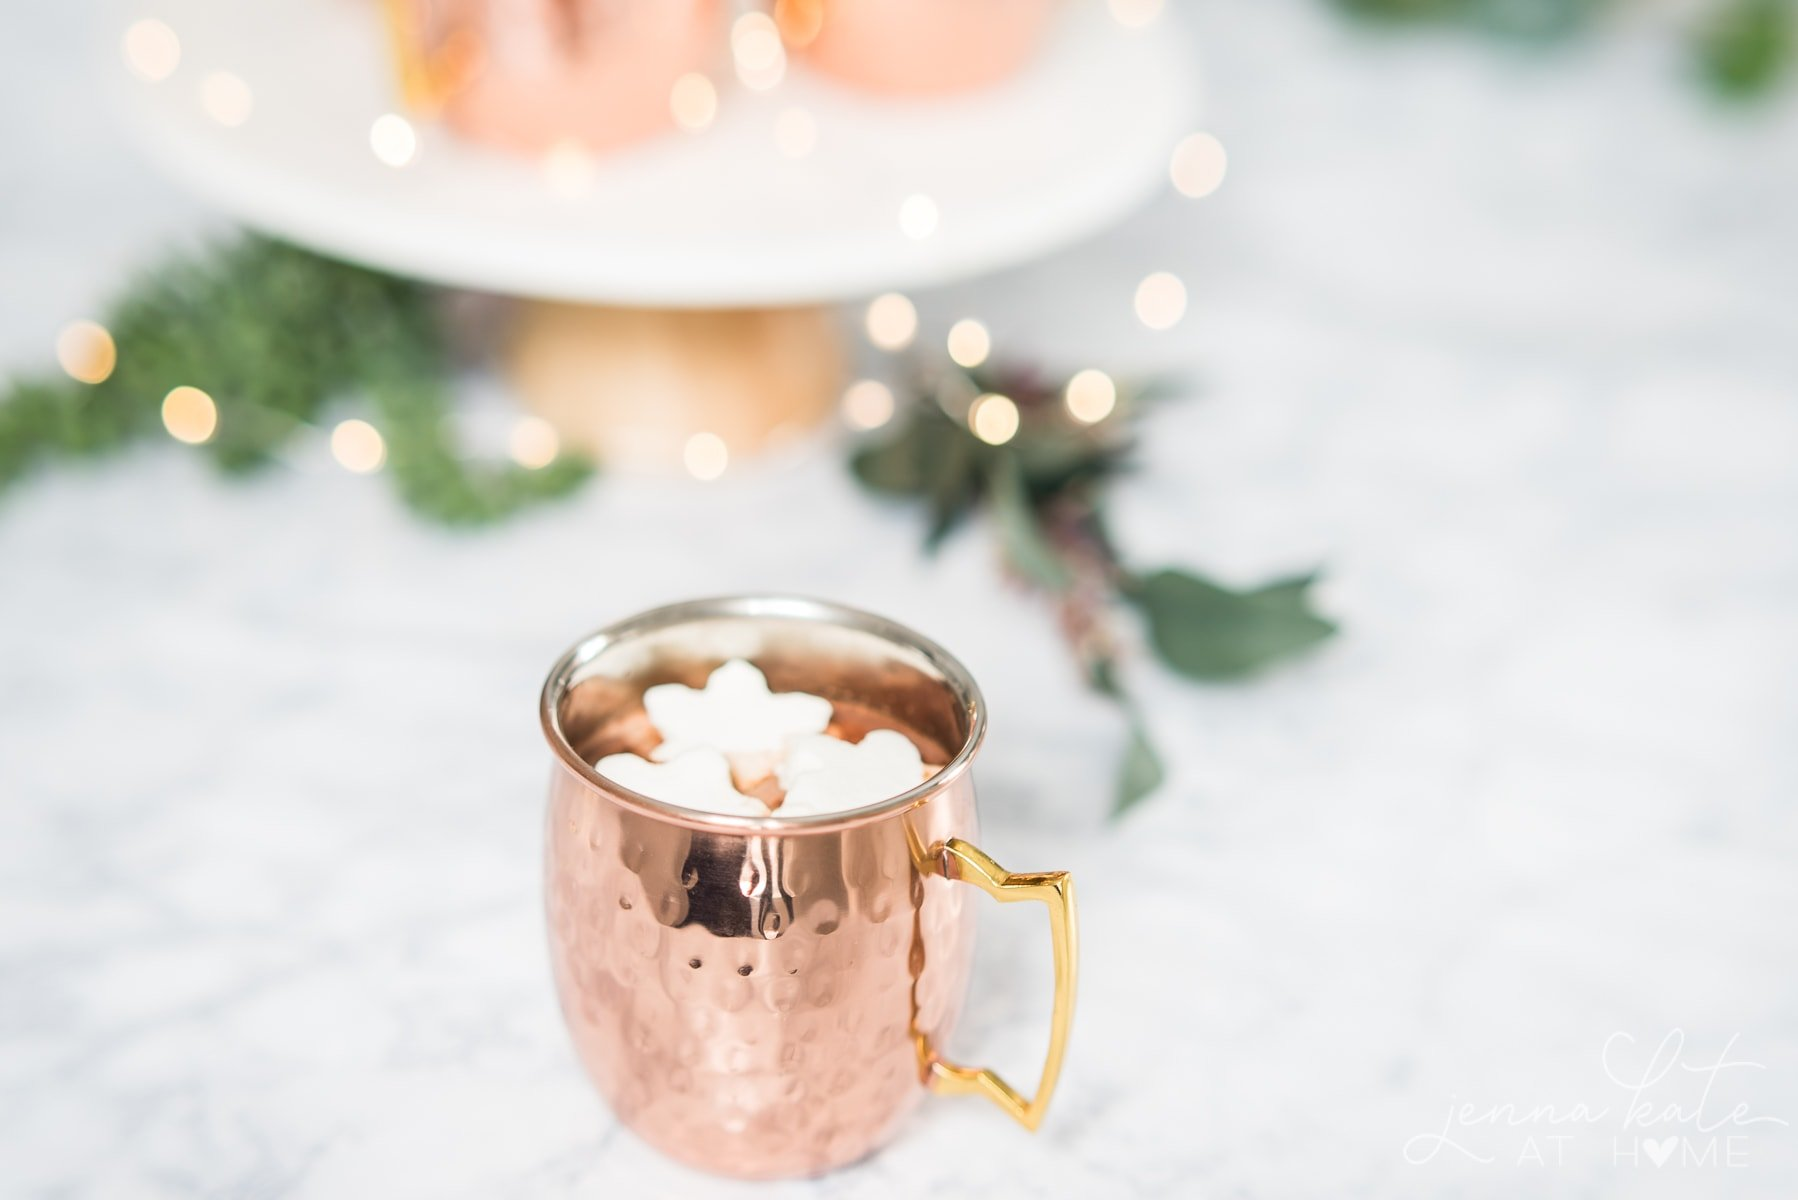 Homemade hot chocolate with only 3 ingredients and no cocoa powder